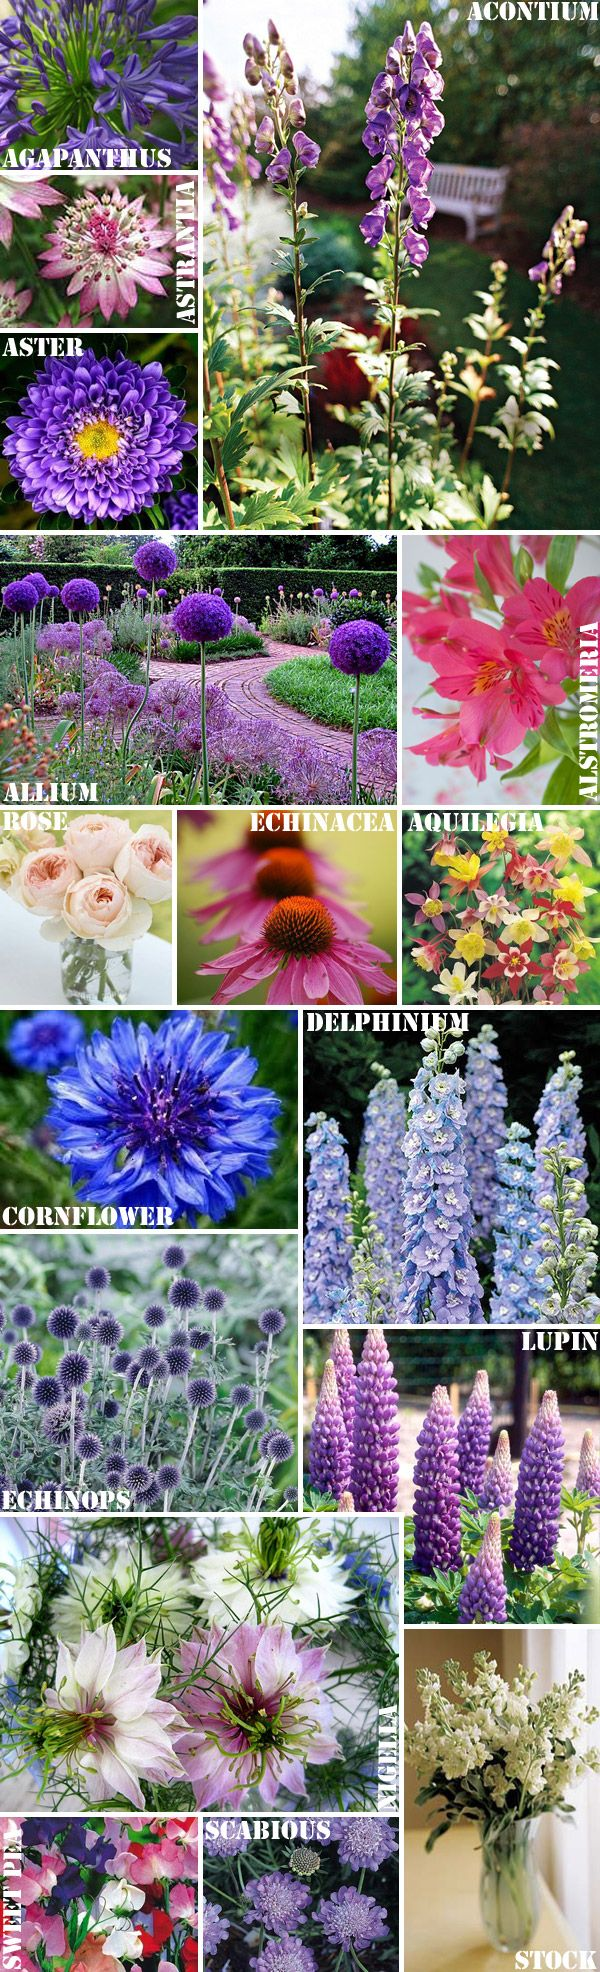 A Midsummer flowers guide by @Lilly Nolta The Florist on @florencefinds - Perfect for weddings